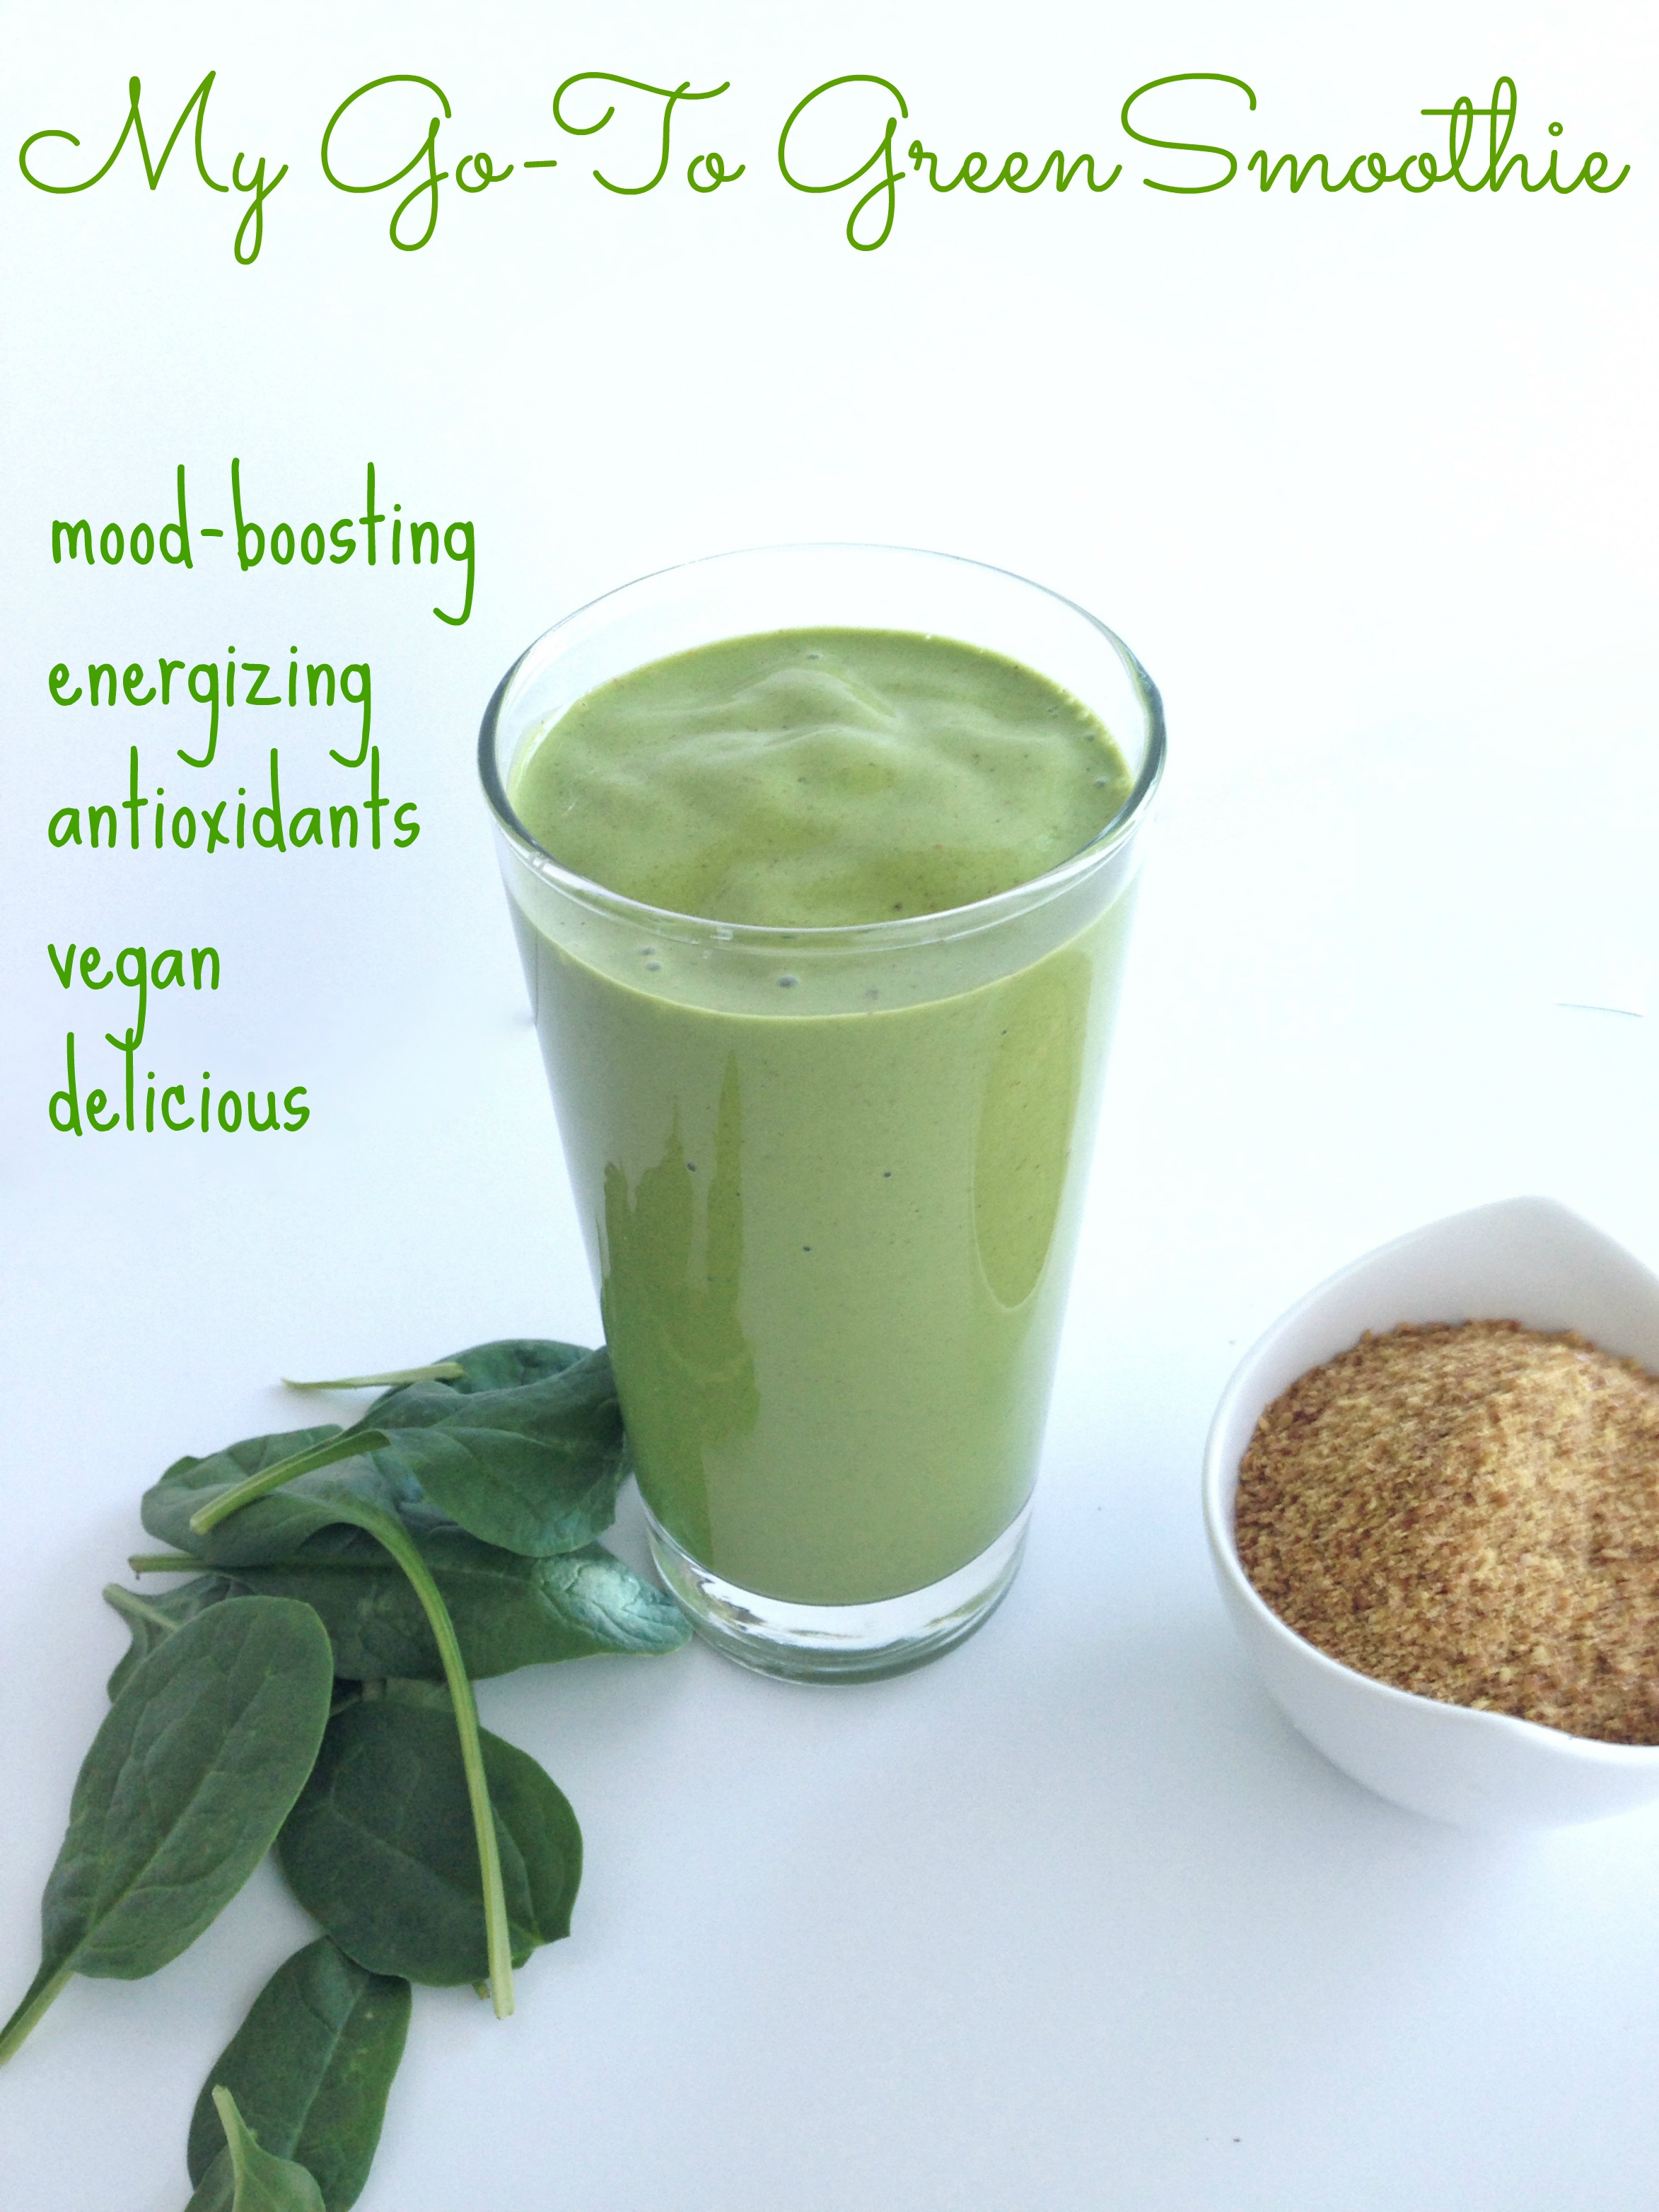 energizing mood-boosting green smoothie with maca flaxseed spinach banana and peanut butter